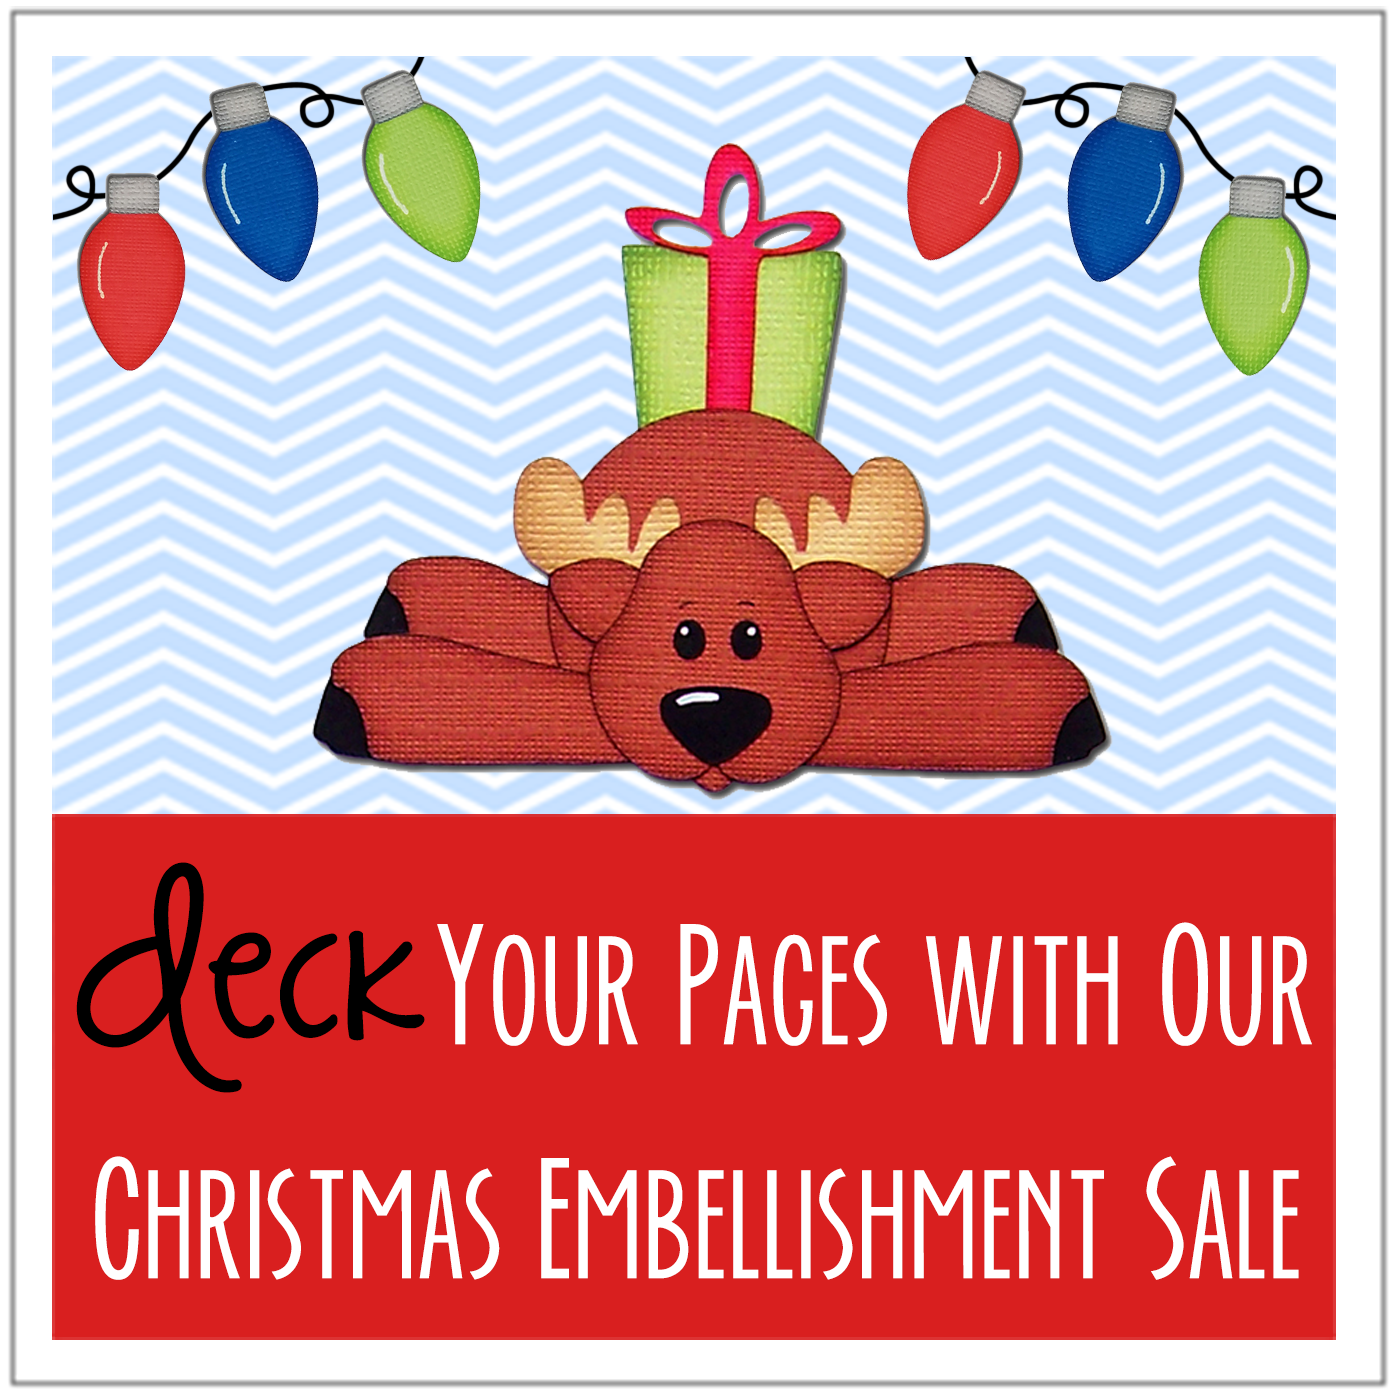 Deck Your Pages With Our Christmas Embellishment Sale